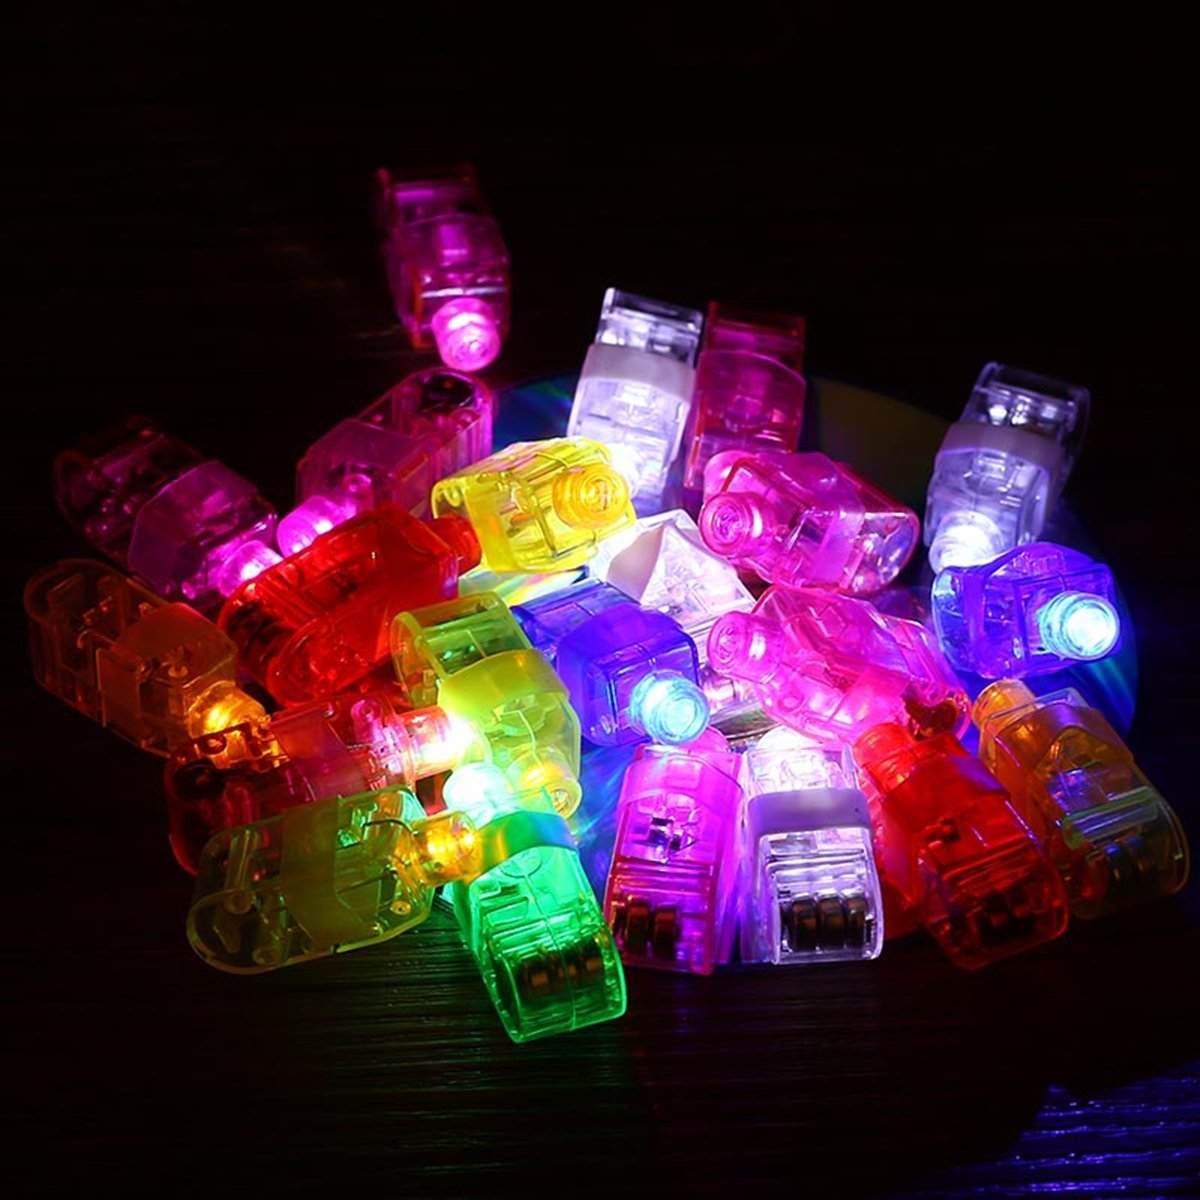 UUOUU LED Finger Lights Pack of 50 Super Bright Finger Flashlight Toys for Christmas Festival Party Decor by UUOUU (Image #3)